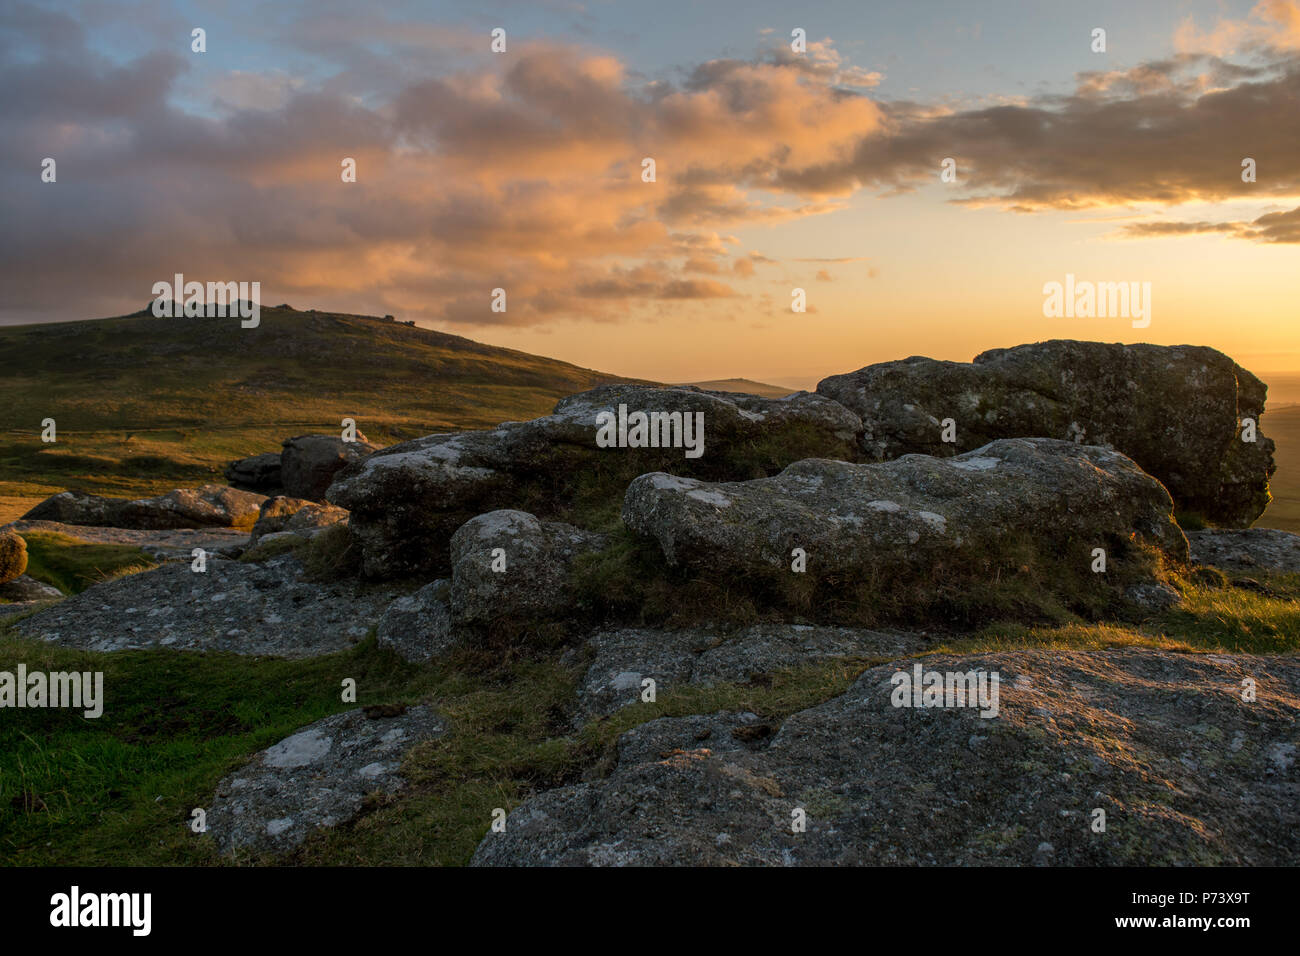 Late Summer on Dartmoor, with a glorious sunset and wonderful light - Stock Image